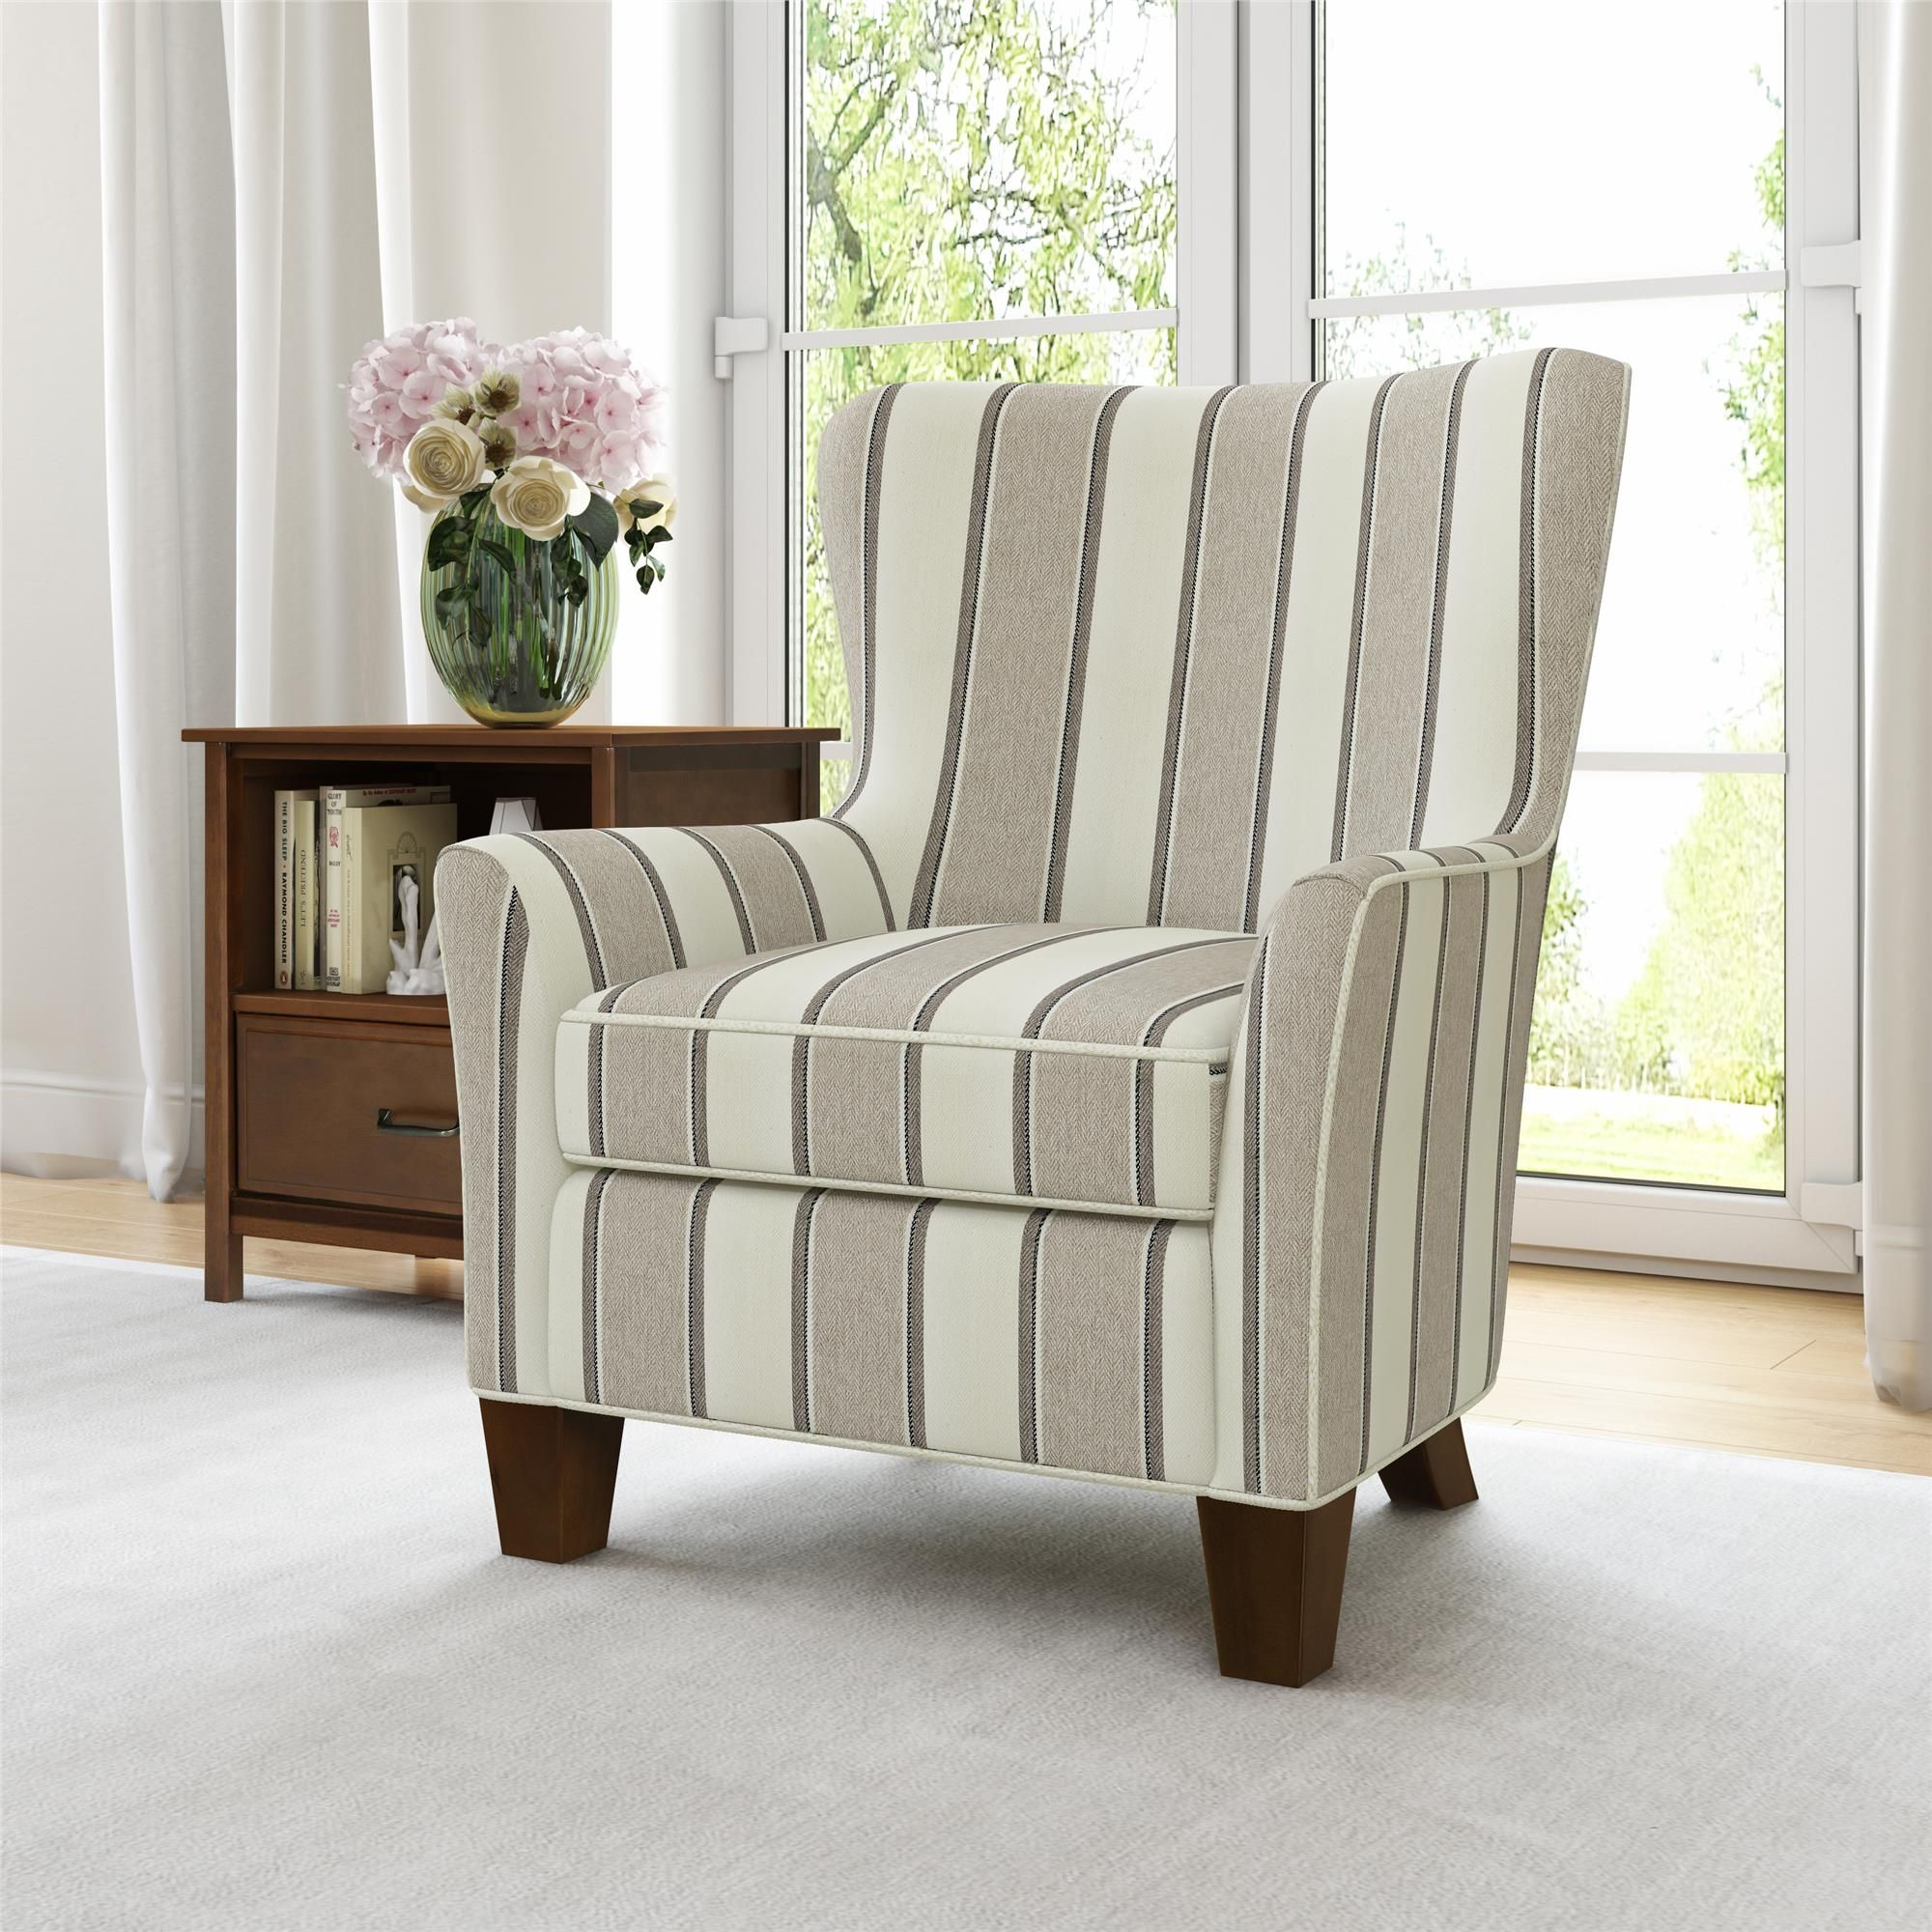 Better Homes Gardens Grayson Accent Chair Beige Stripe Walmart Com In 2020 Chair And Ottoman Set Classic Living Room Accent Chairs #striped #chairs #living #room